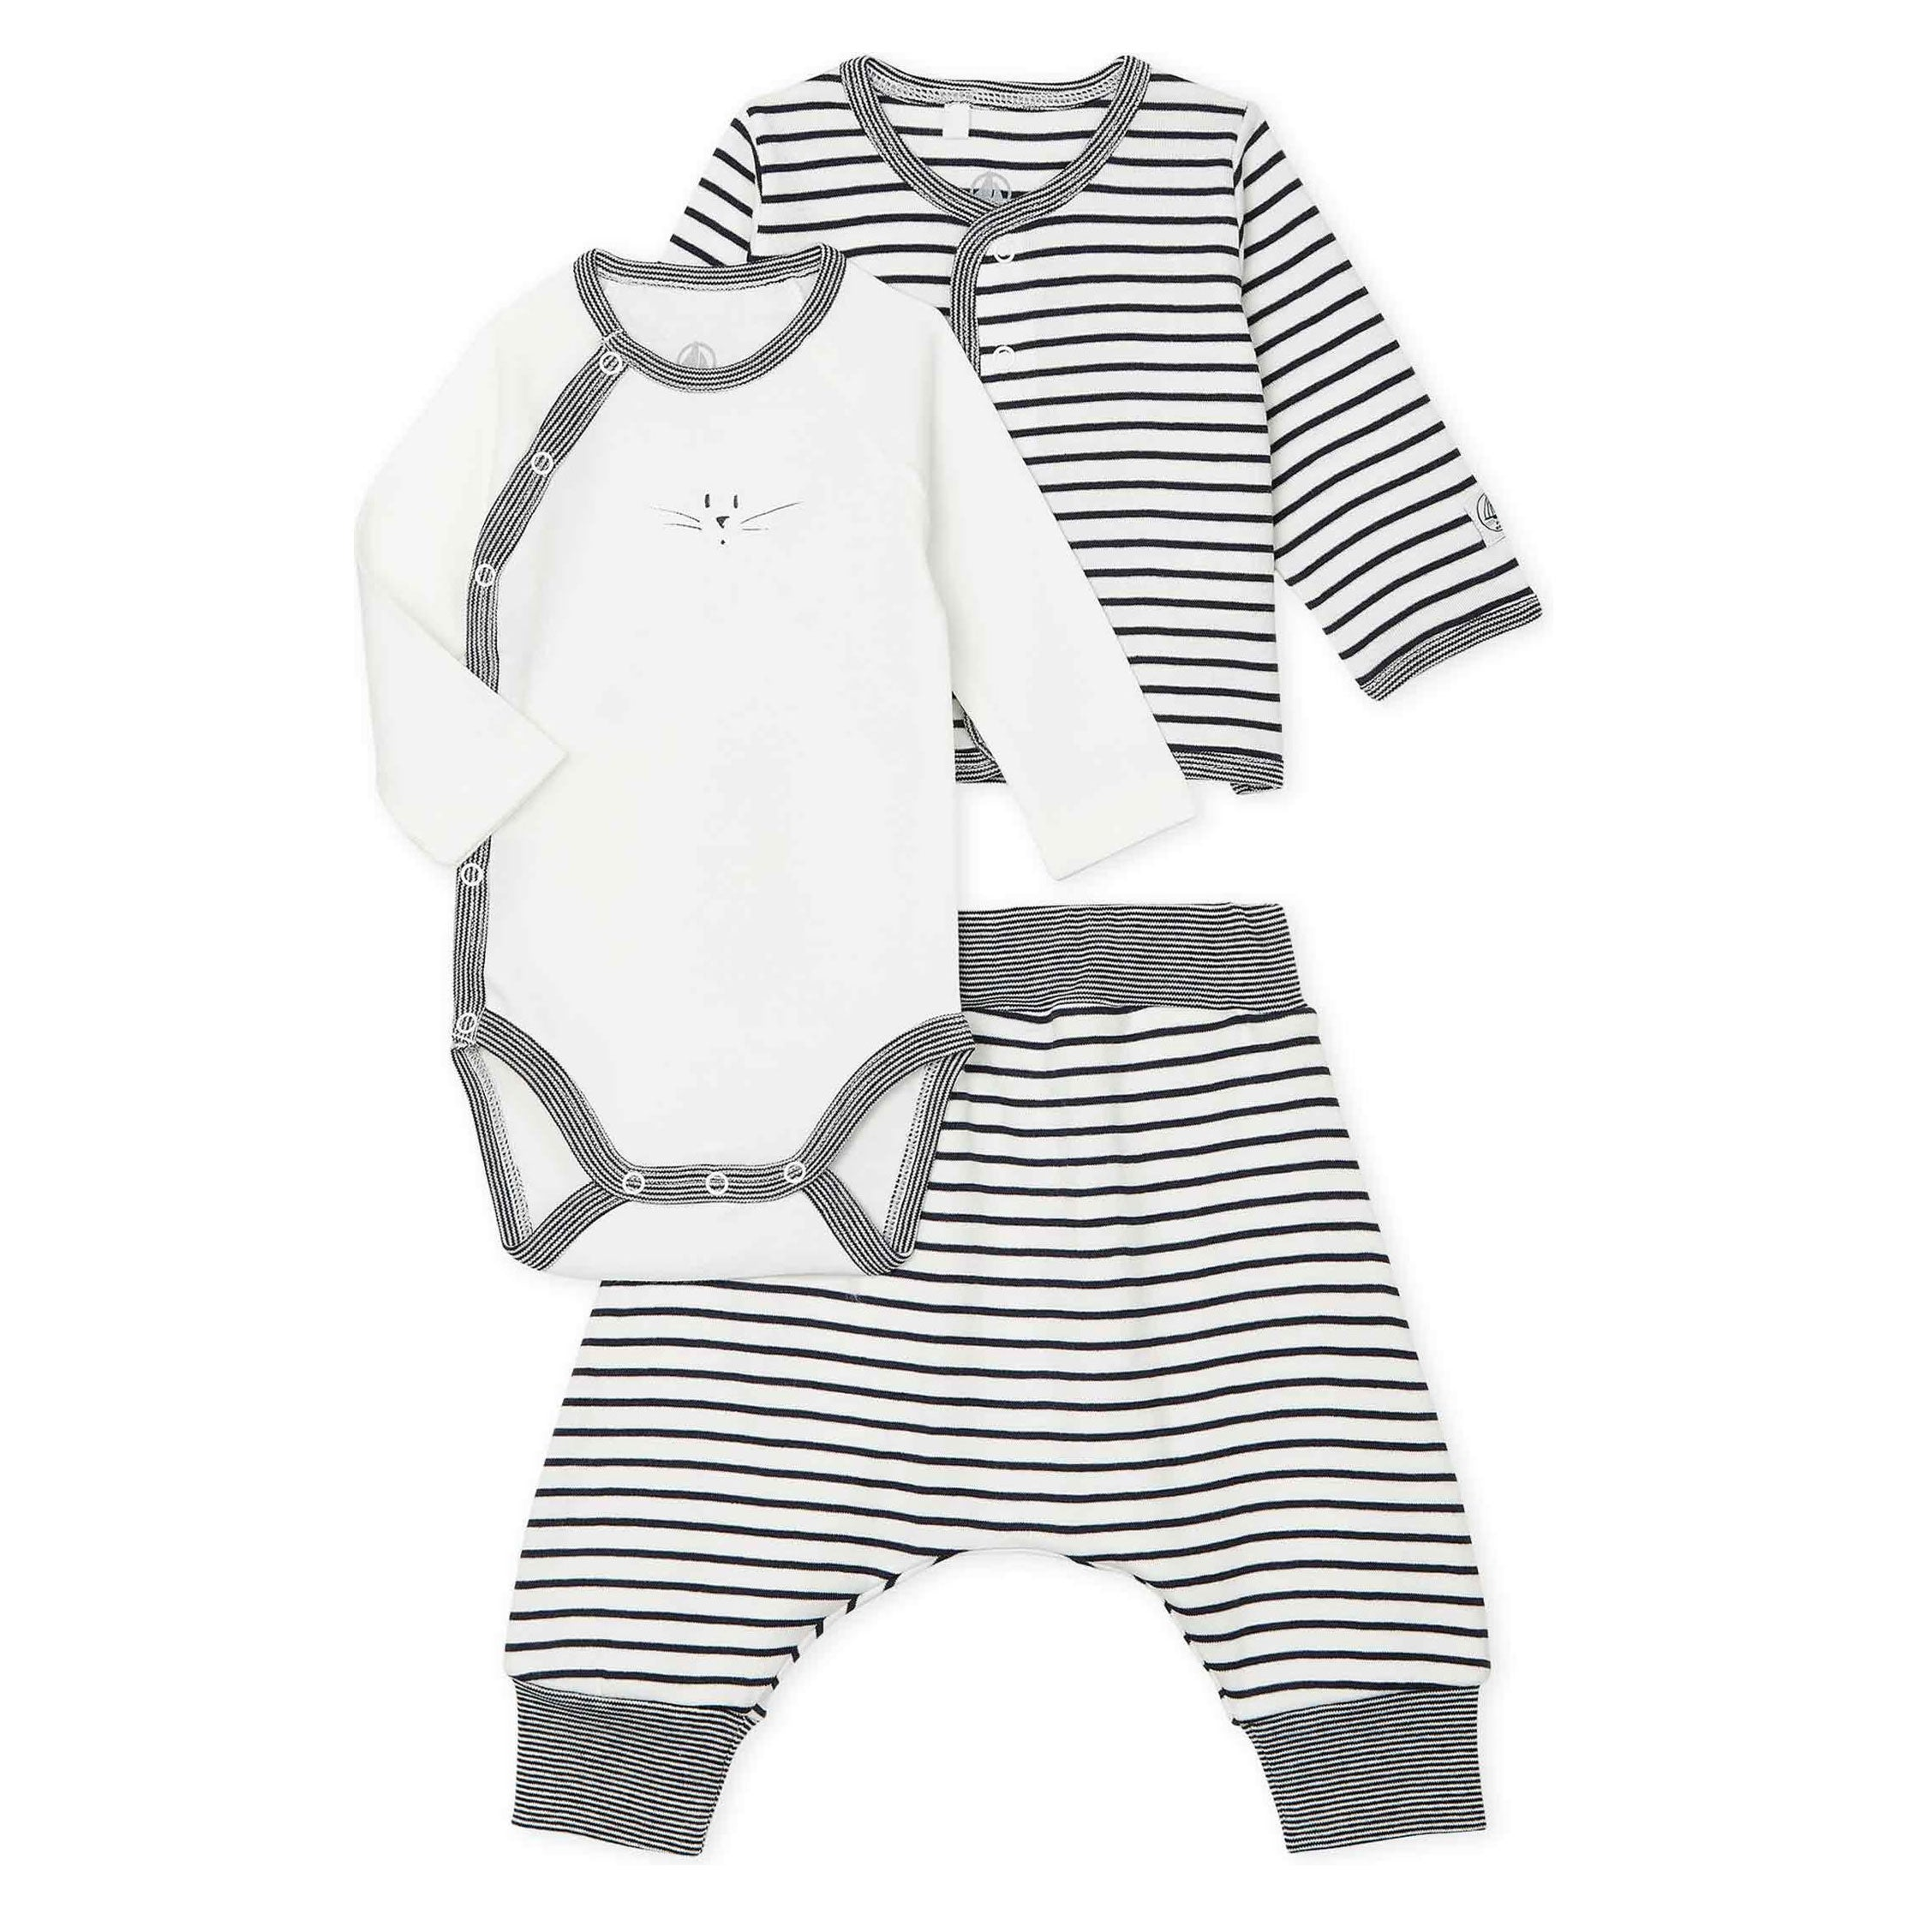 Best Baby Gifts featuring Petit Bateau at Bonjour Baby Baskets